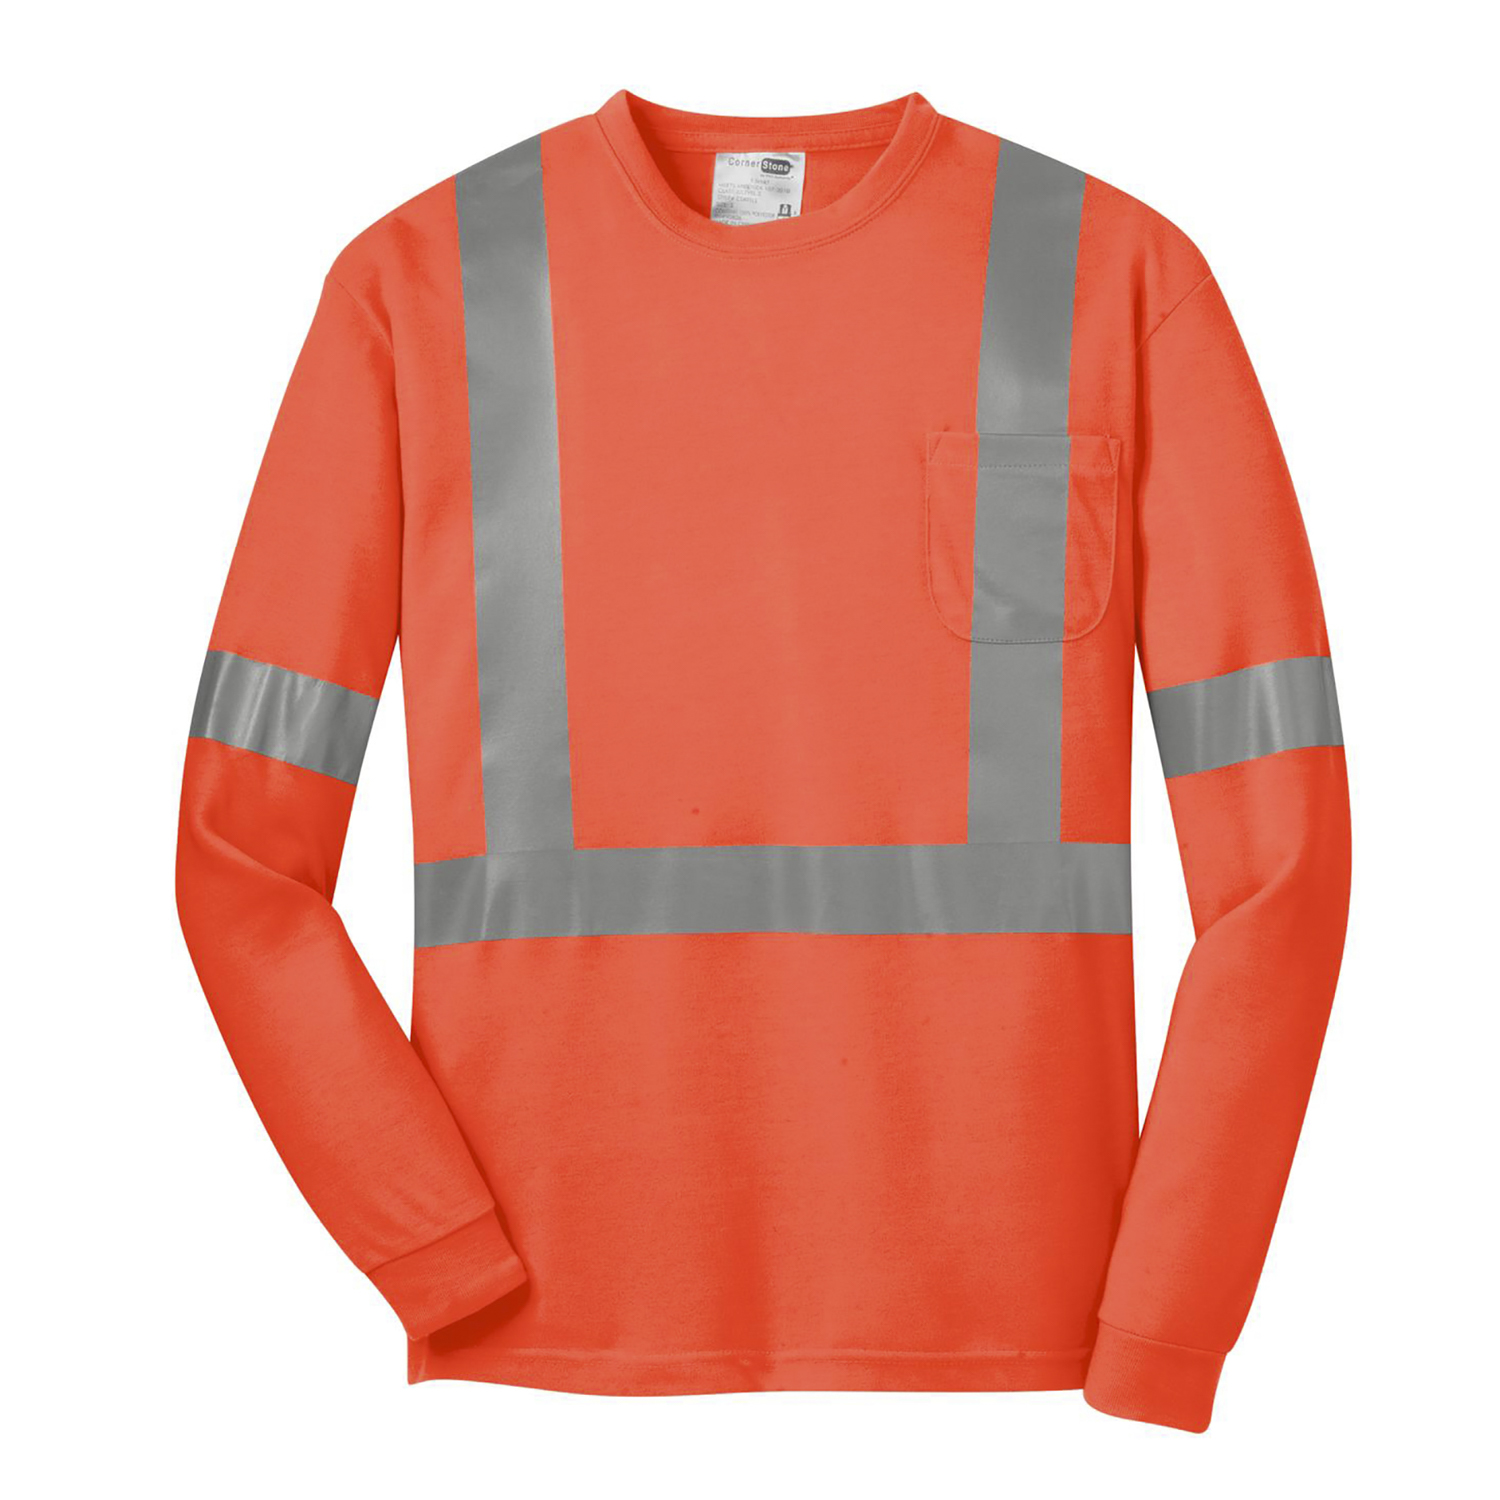 CornerStone ANSI 107 Class 2 Long Sleeve Safety T Shirt